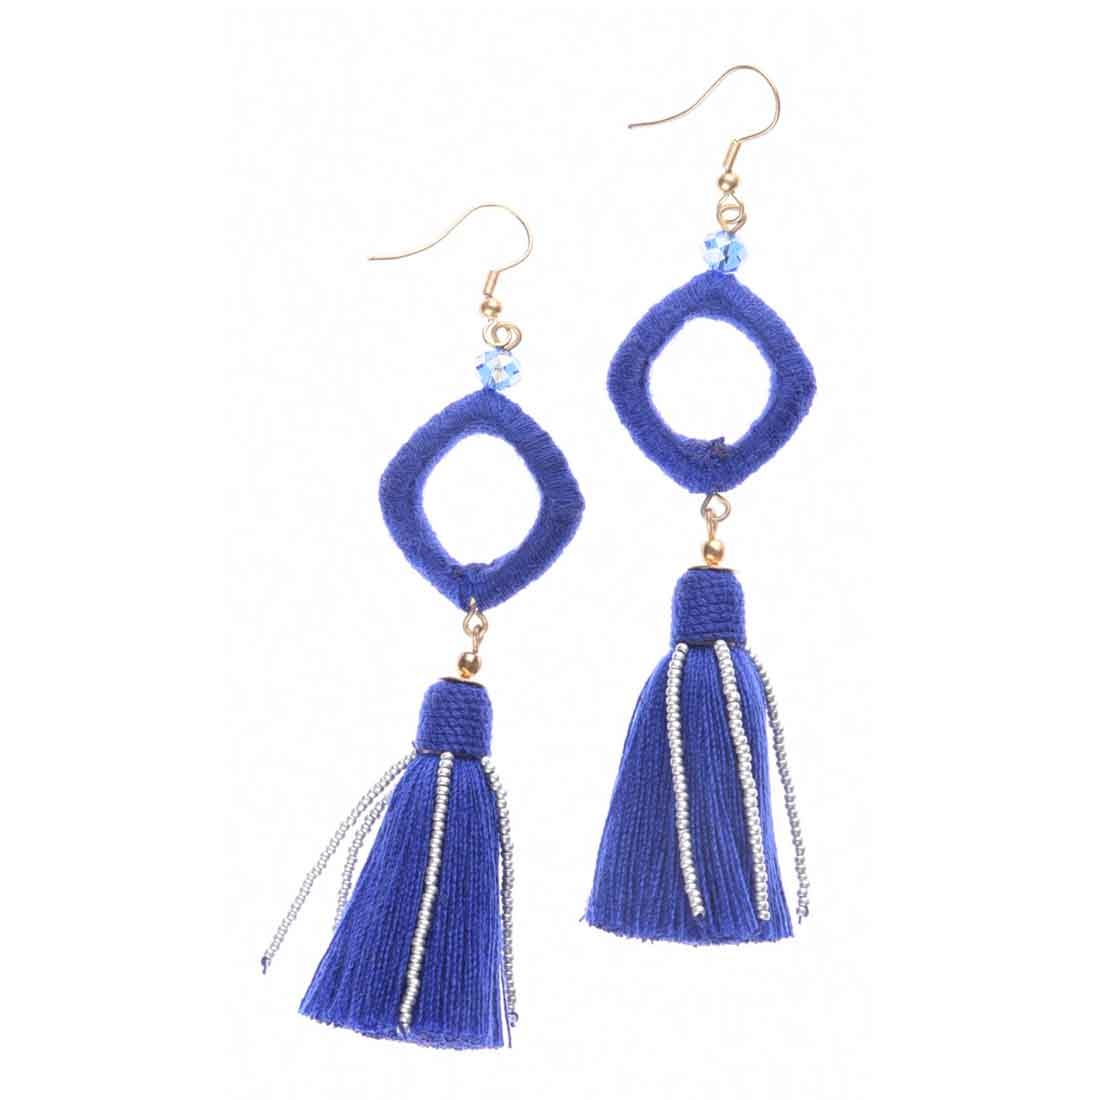 Beads India Square Tassel Girls & Women 1405396 Earrings